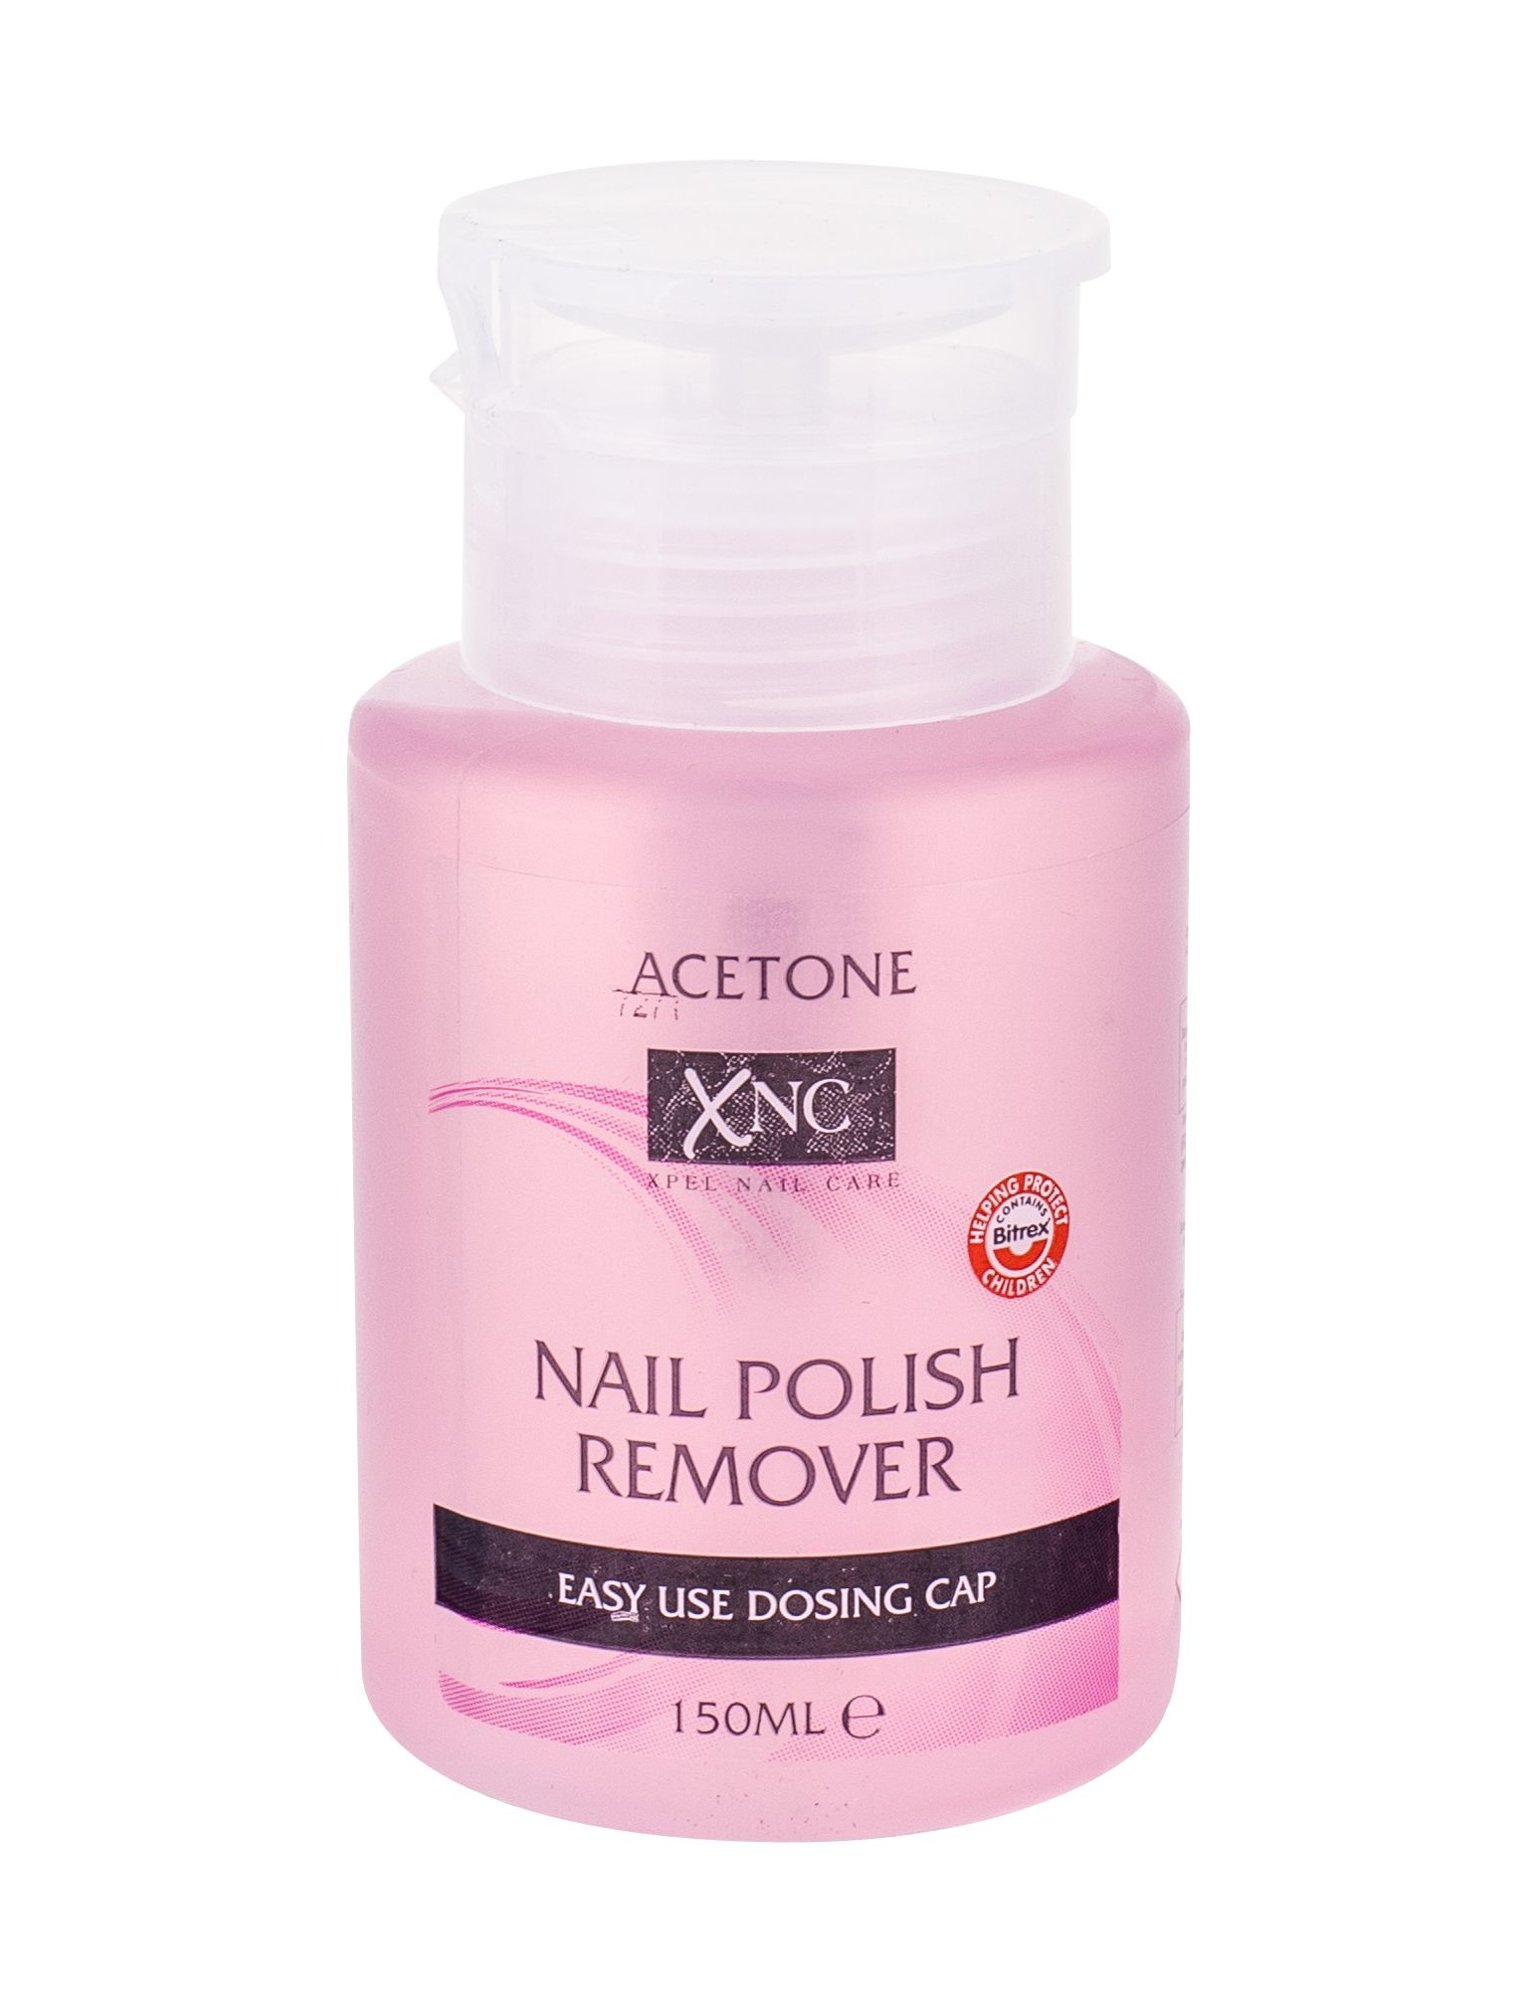 Xpel Nail Care Cosmetic 150ml